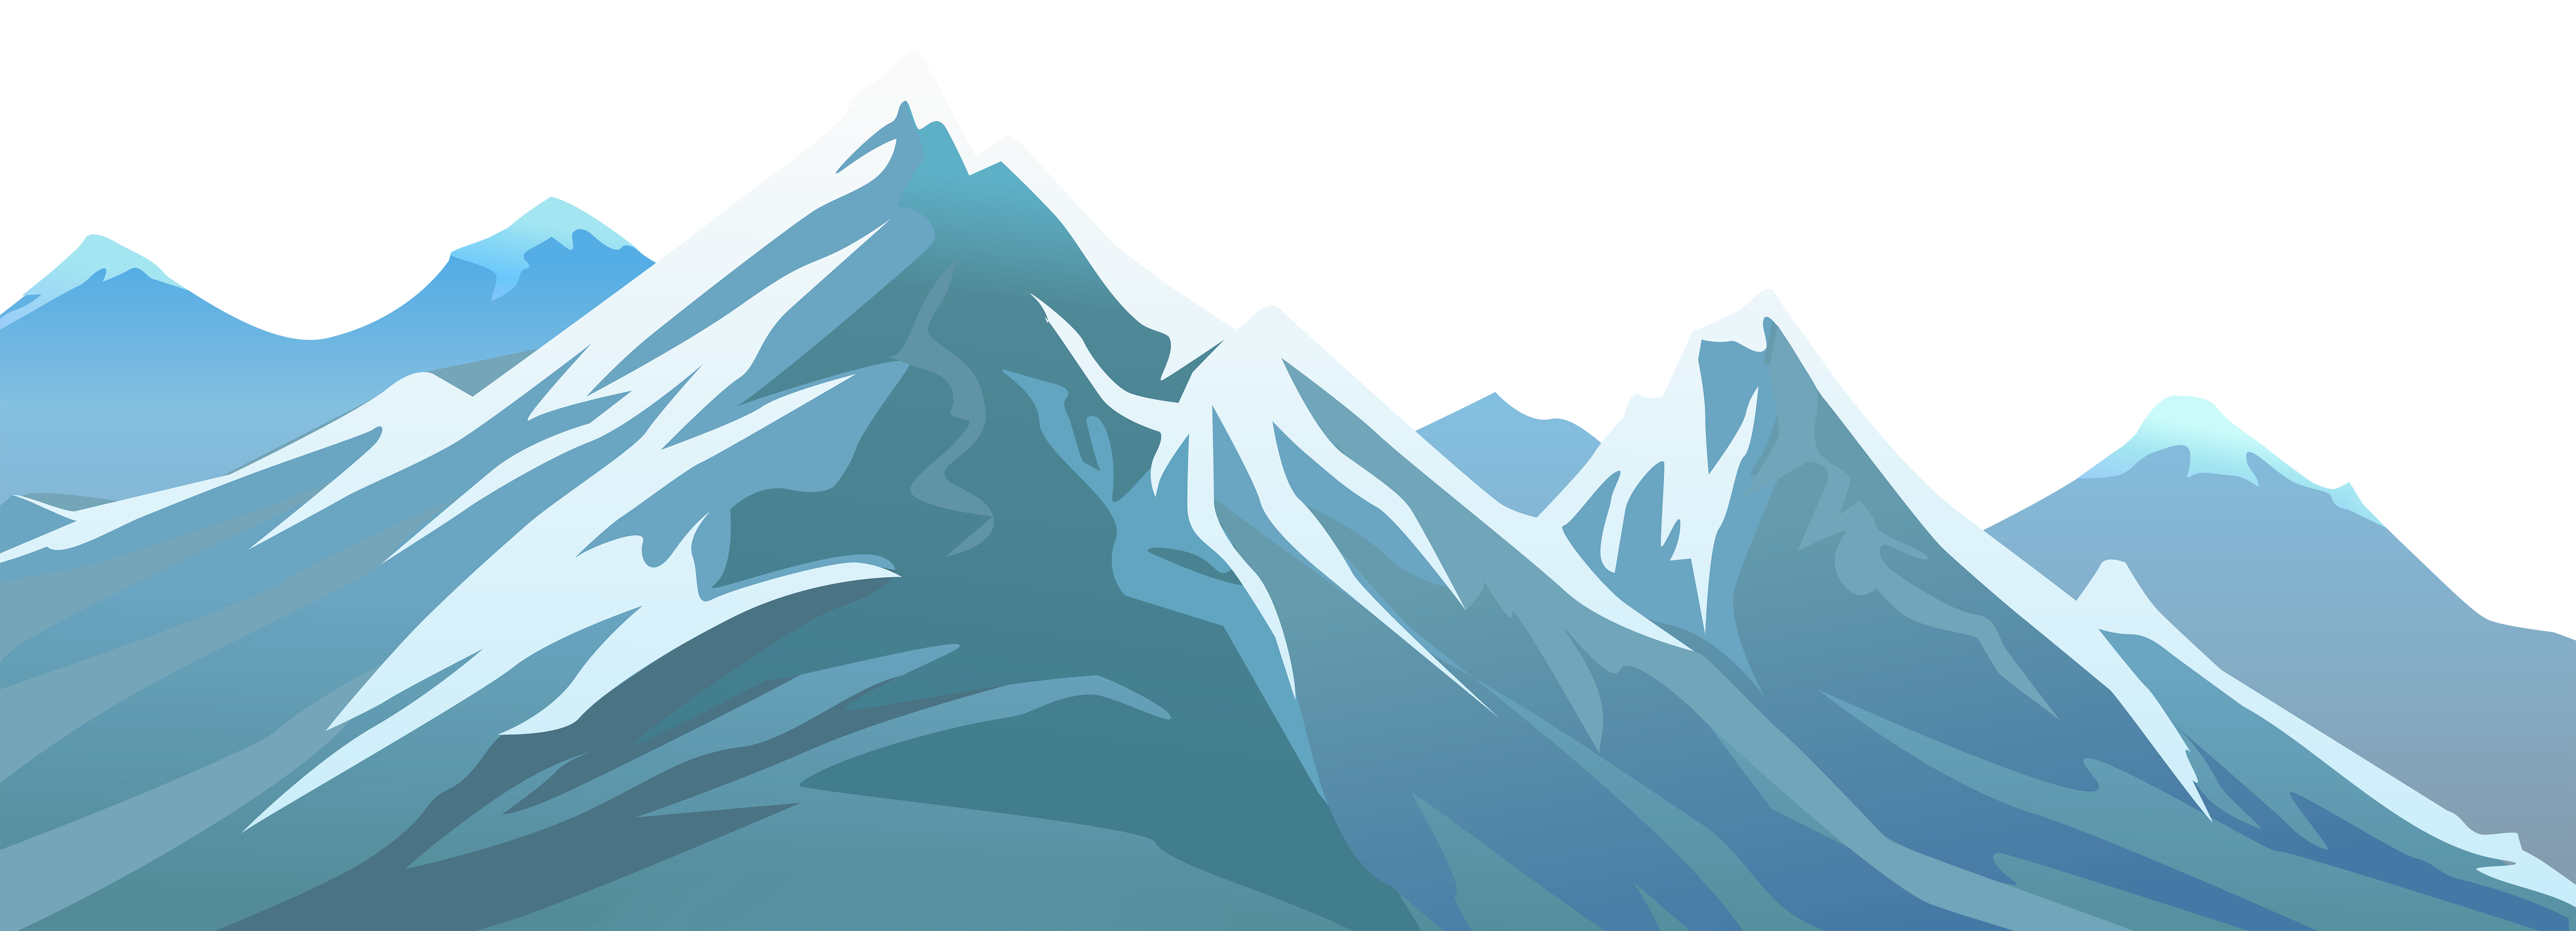 Mountain clipart terrain. Collection of background